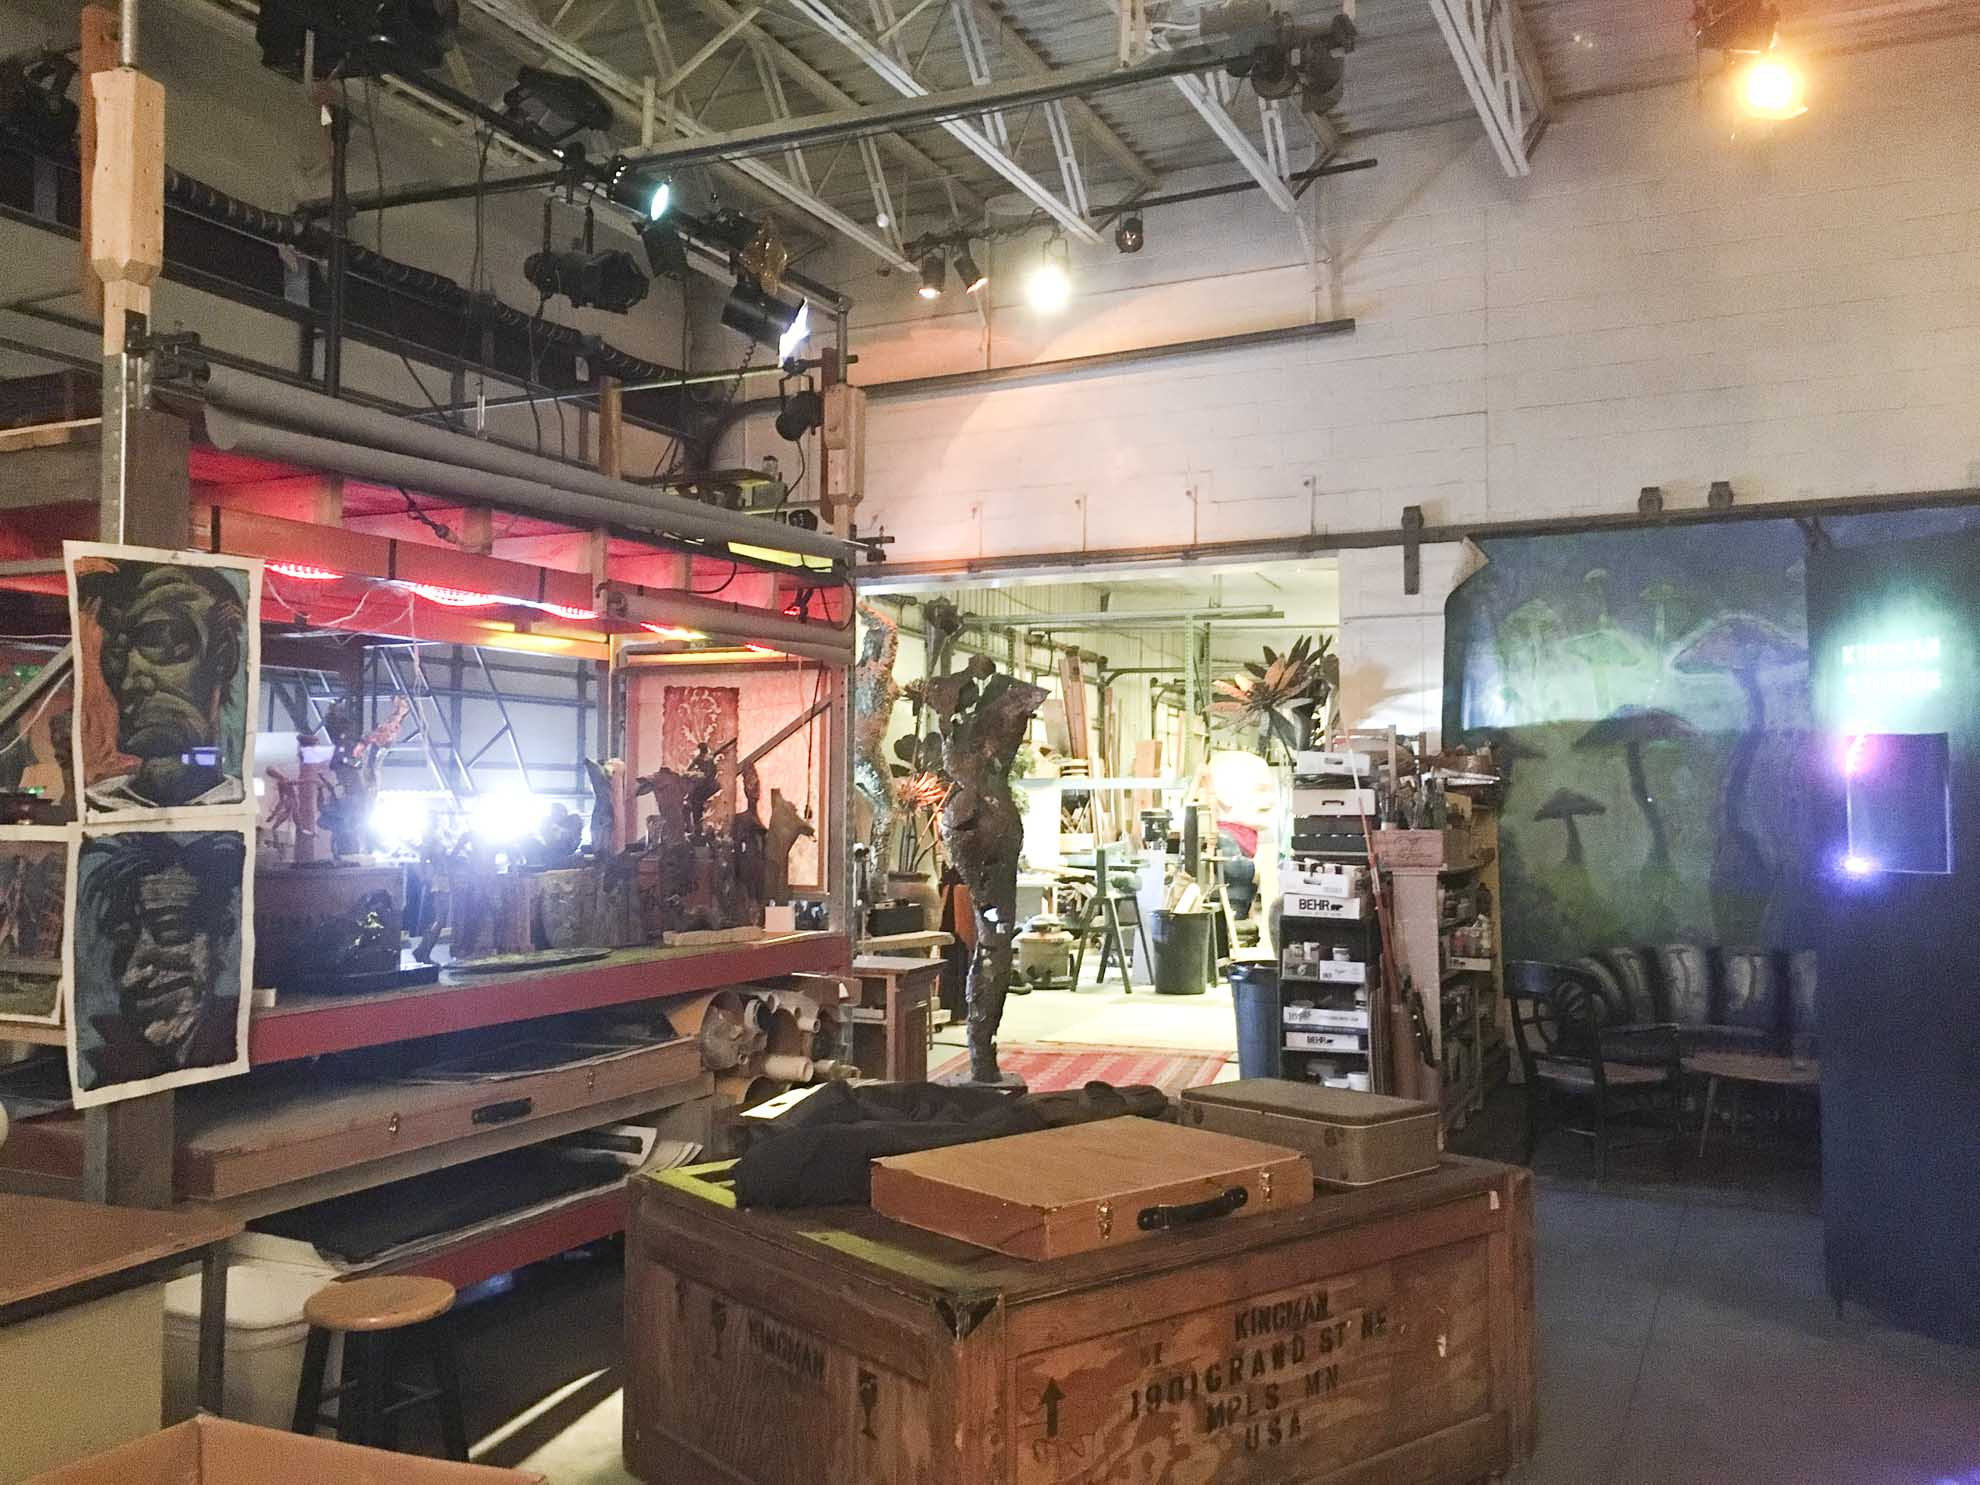 a view of Brant's studio space